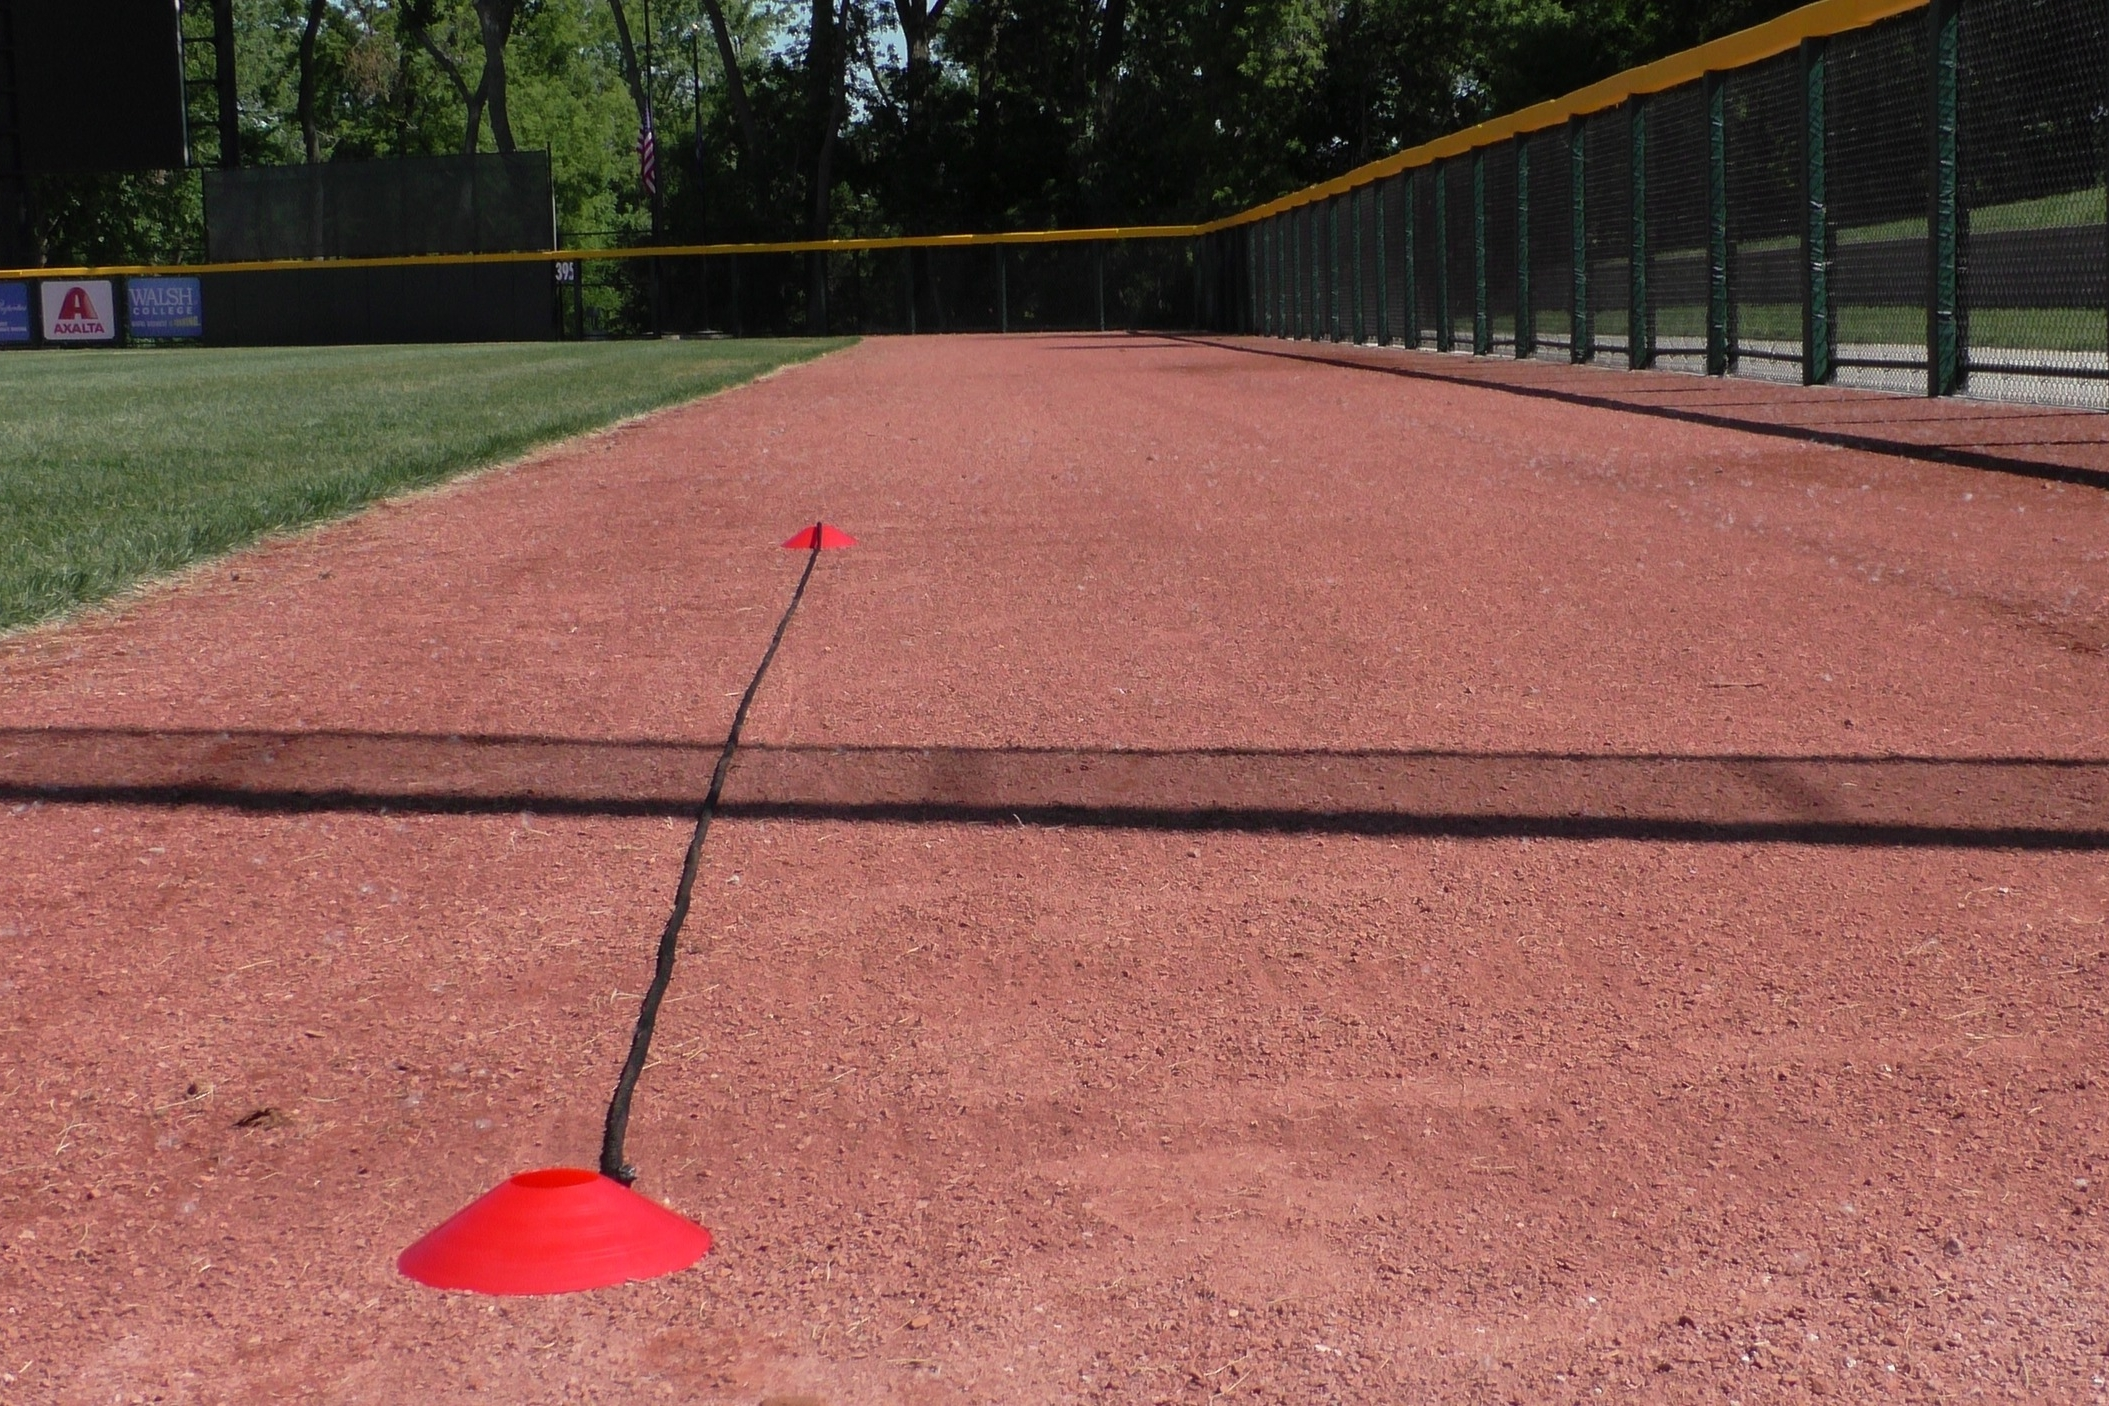 Marking off your Distances - Learn how to use cones and a twenty foot section of rope to mark off your custom throwing distances.